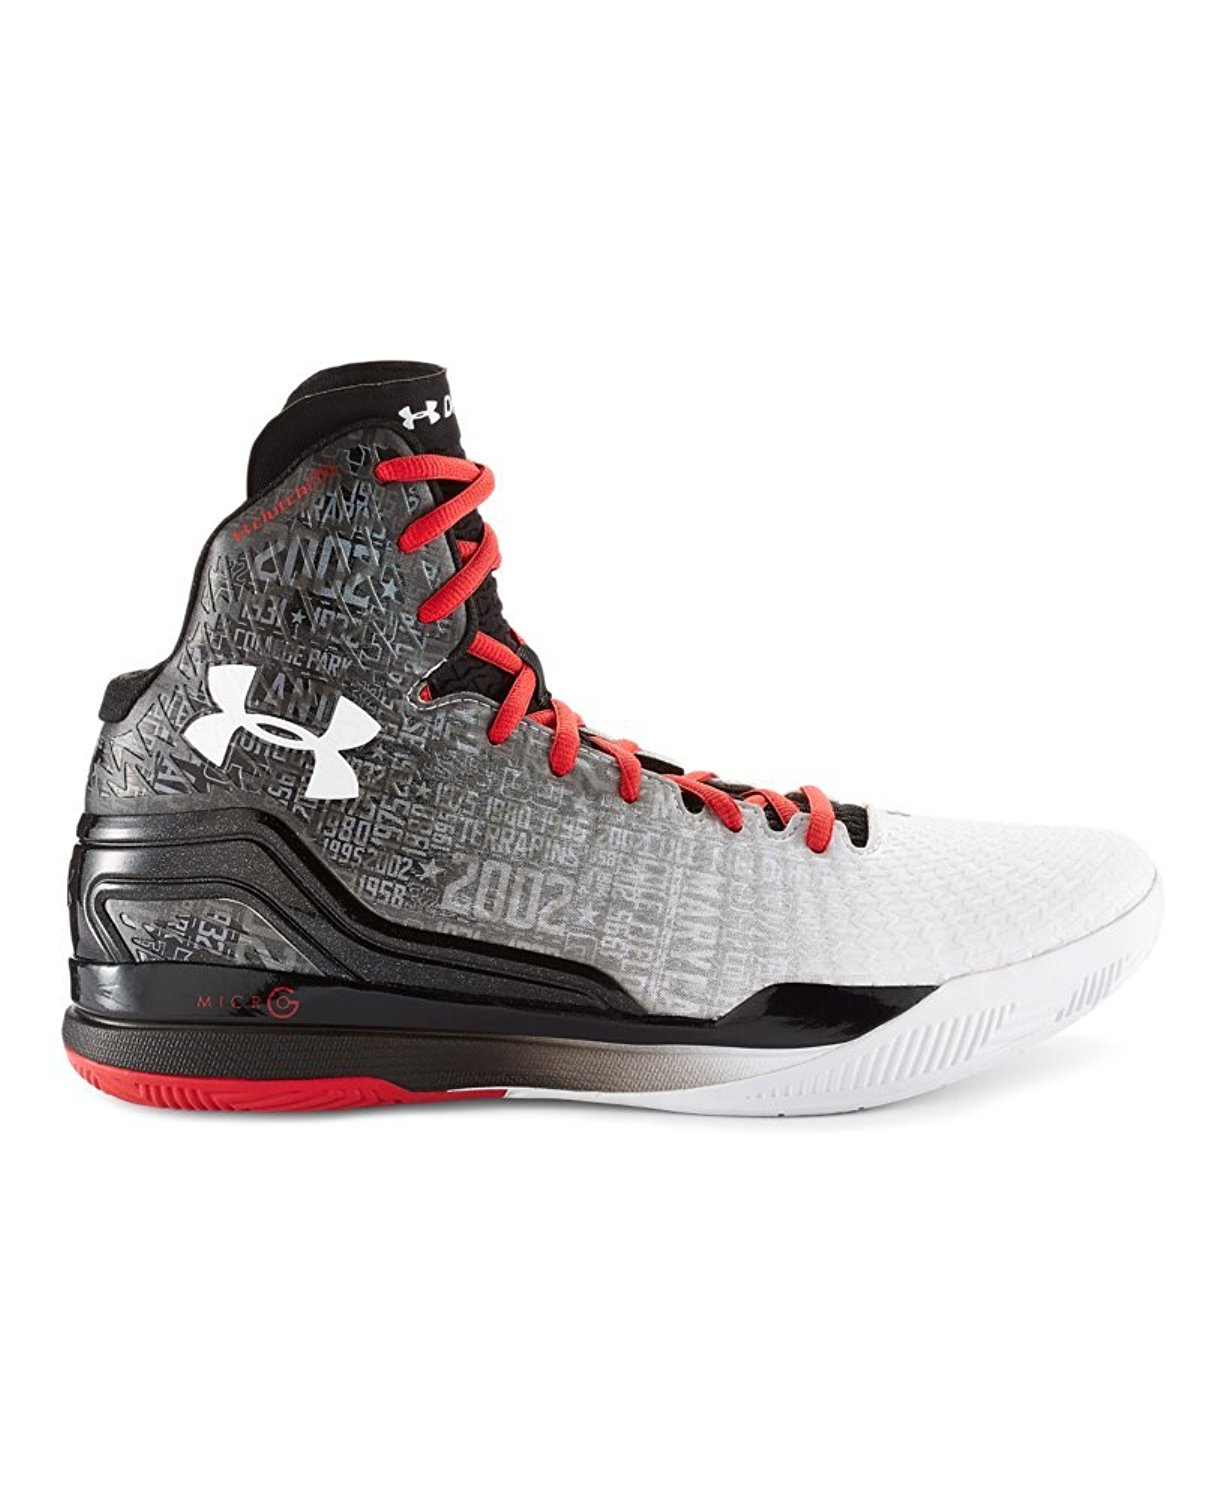 fbe8d96359bf Get Quotations · Under Armour Men s UA ClutchFit Drive Mid Basketball Shoes  Black